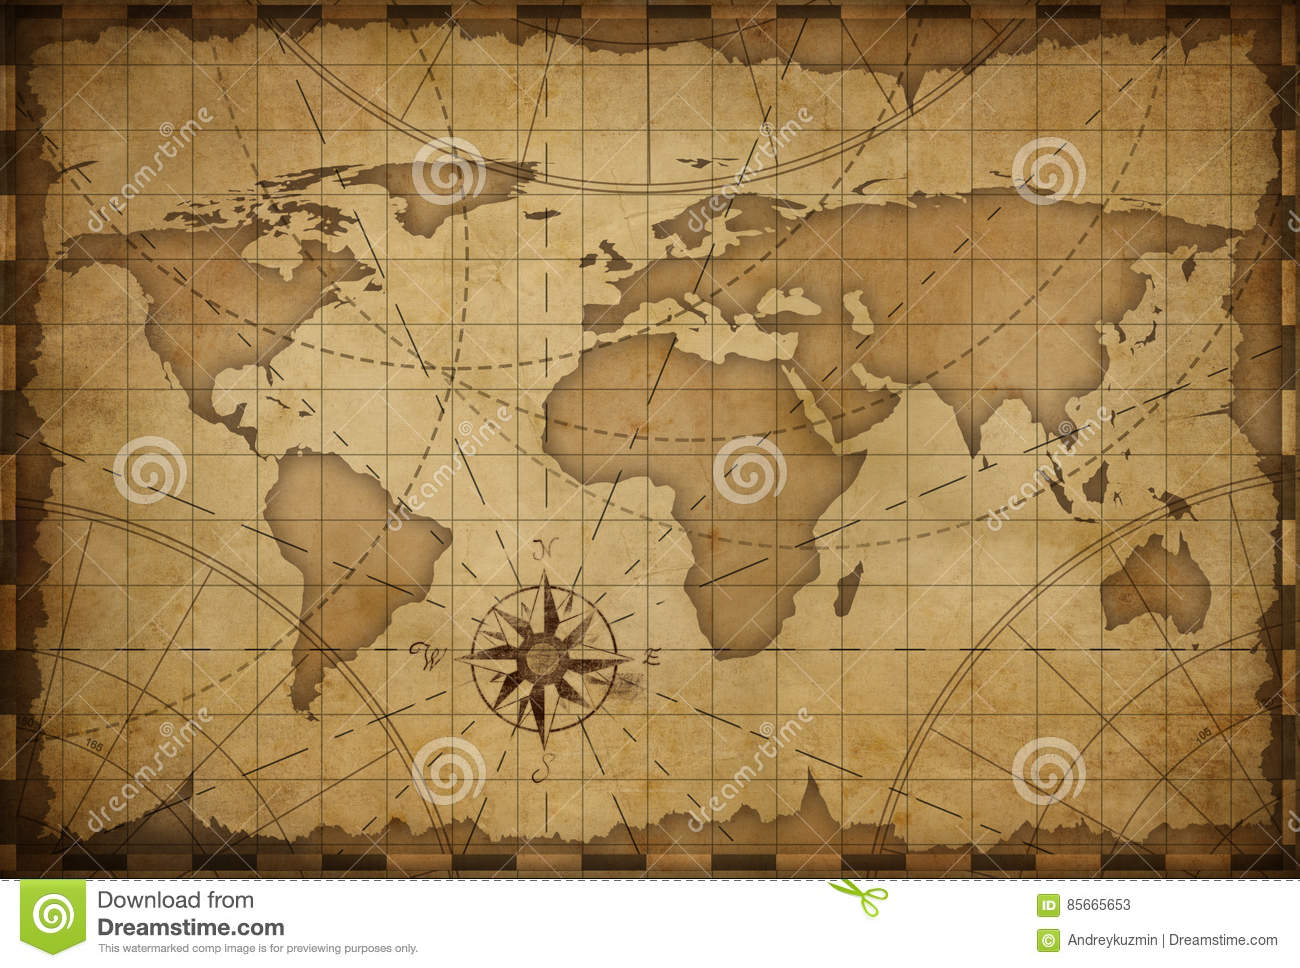 Old world map background stock illustration illustration of finding old world map background stock illustration illustration of finding 85665653 gumiabroncs Gallery